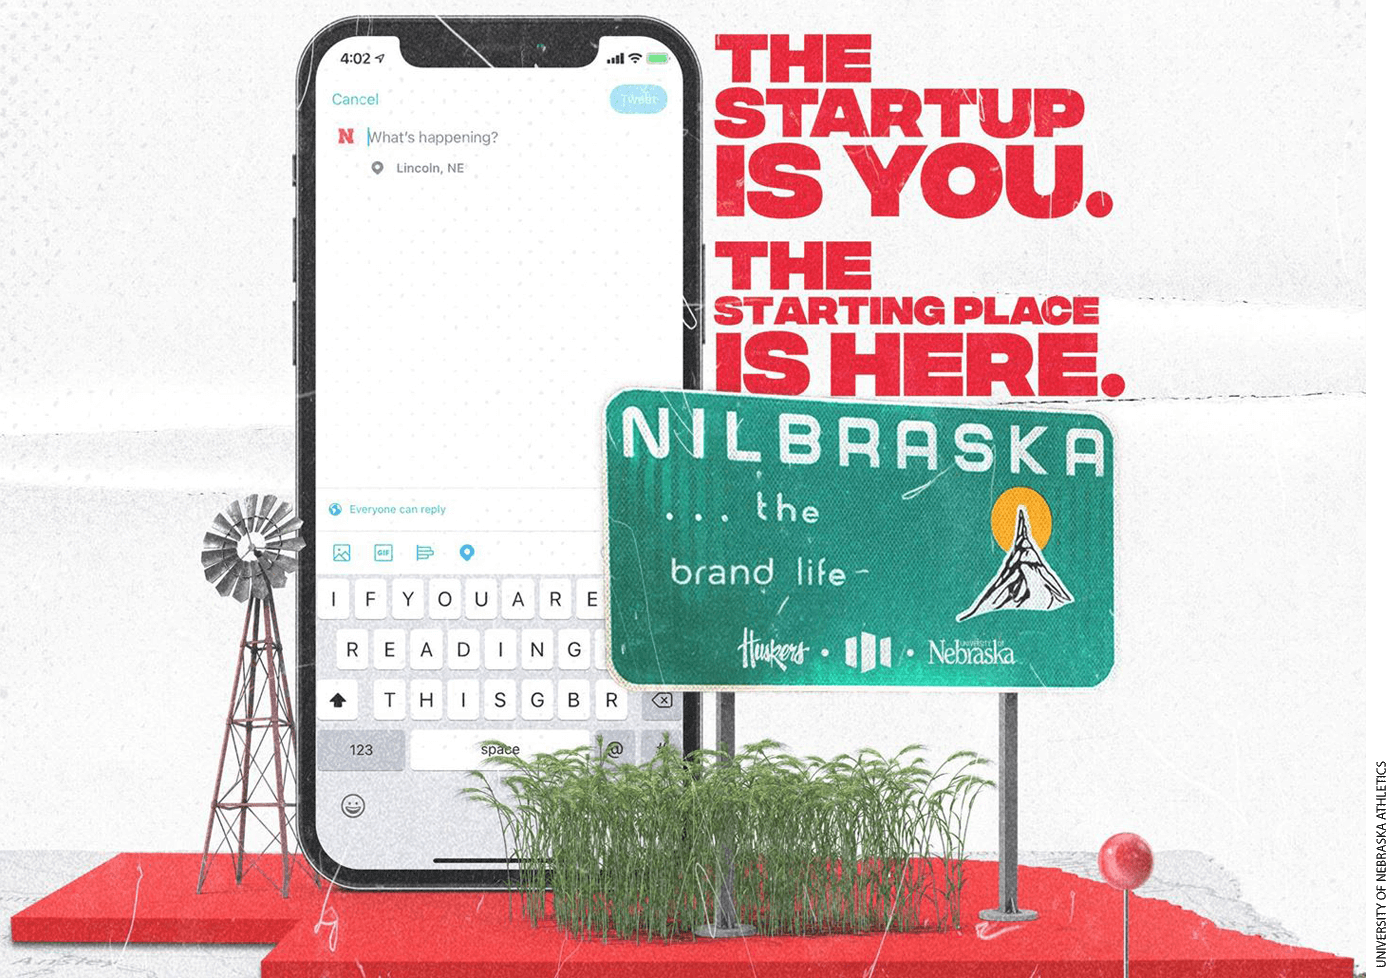 """Nebraska Athletics, which launched the #NILbraska program on its flagship campus in Lincoln in June, stated its goal to create """"a core curriculum that will benefit not just student-athletes, but all students on campus who may be interested in leveraging their personal brands."""""""